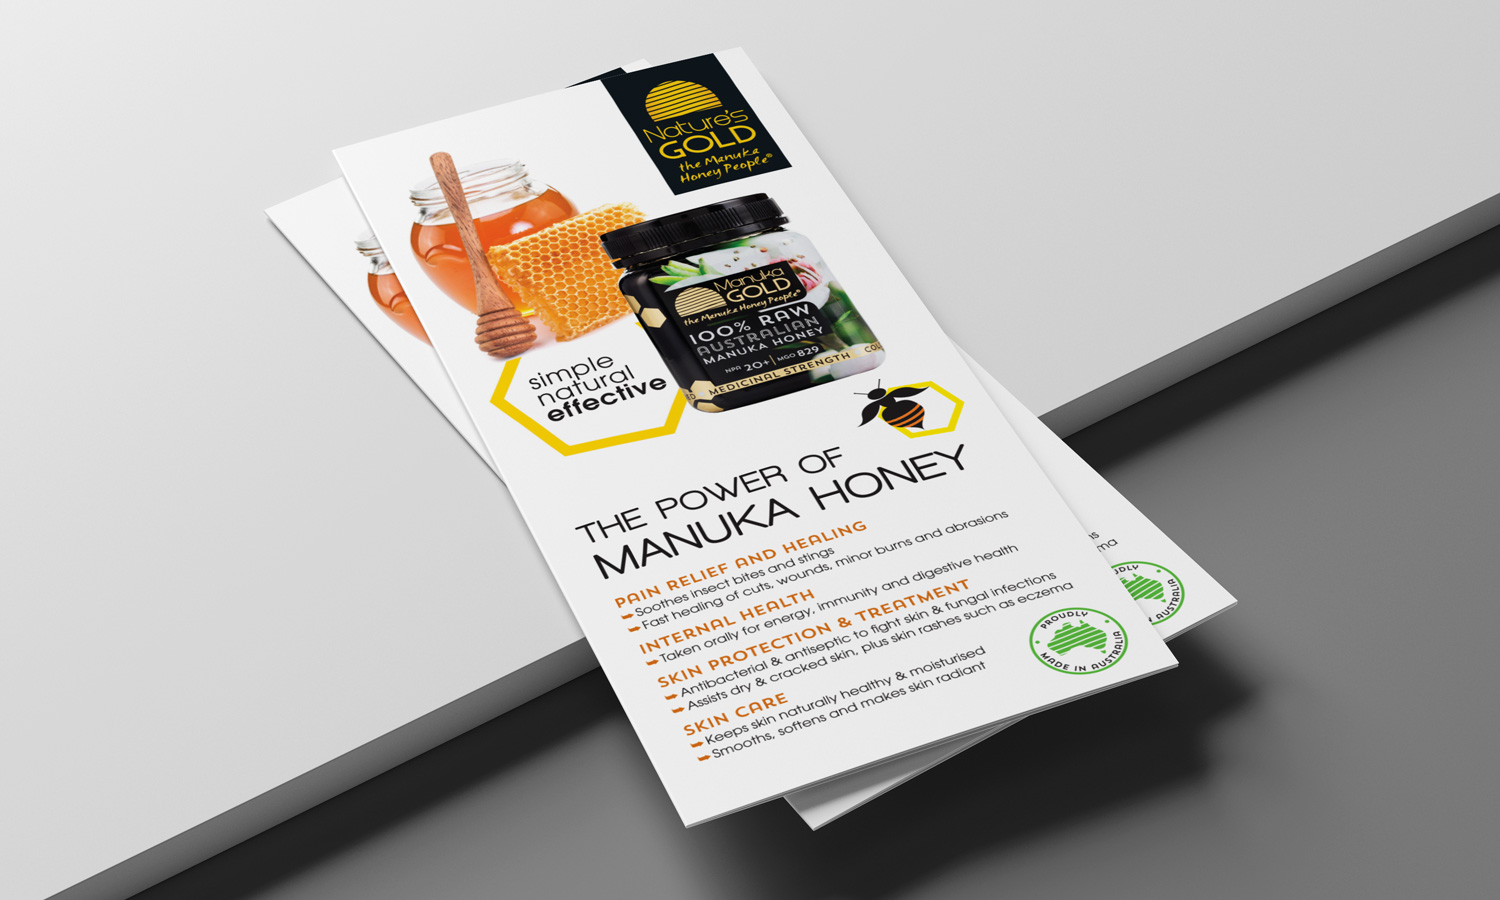 Flyer – Print And Email Versions In English And Mandarin